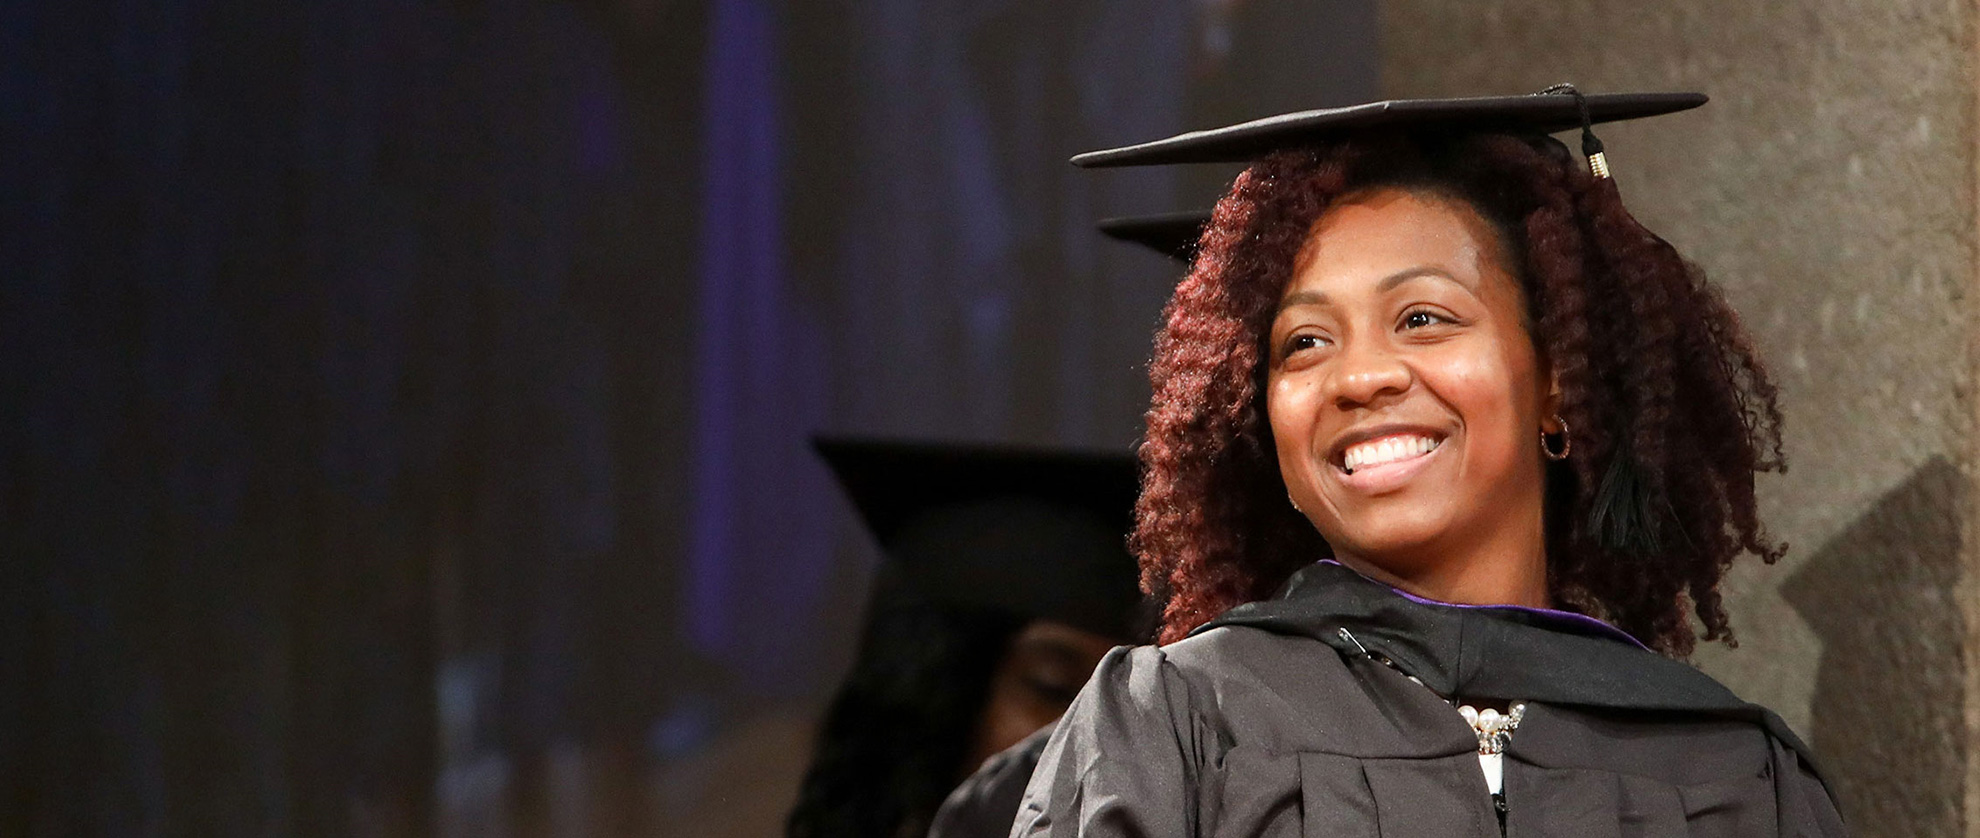 Excelsior College Graduate Smiling at Commencement Ceremony